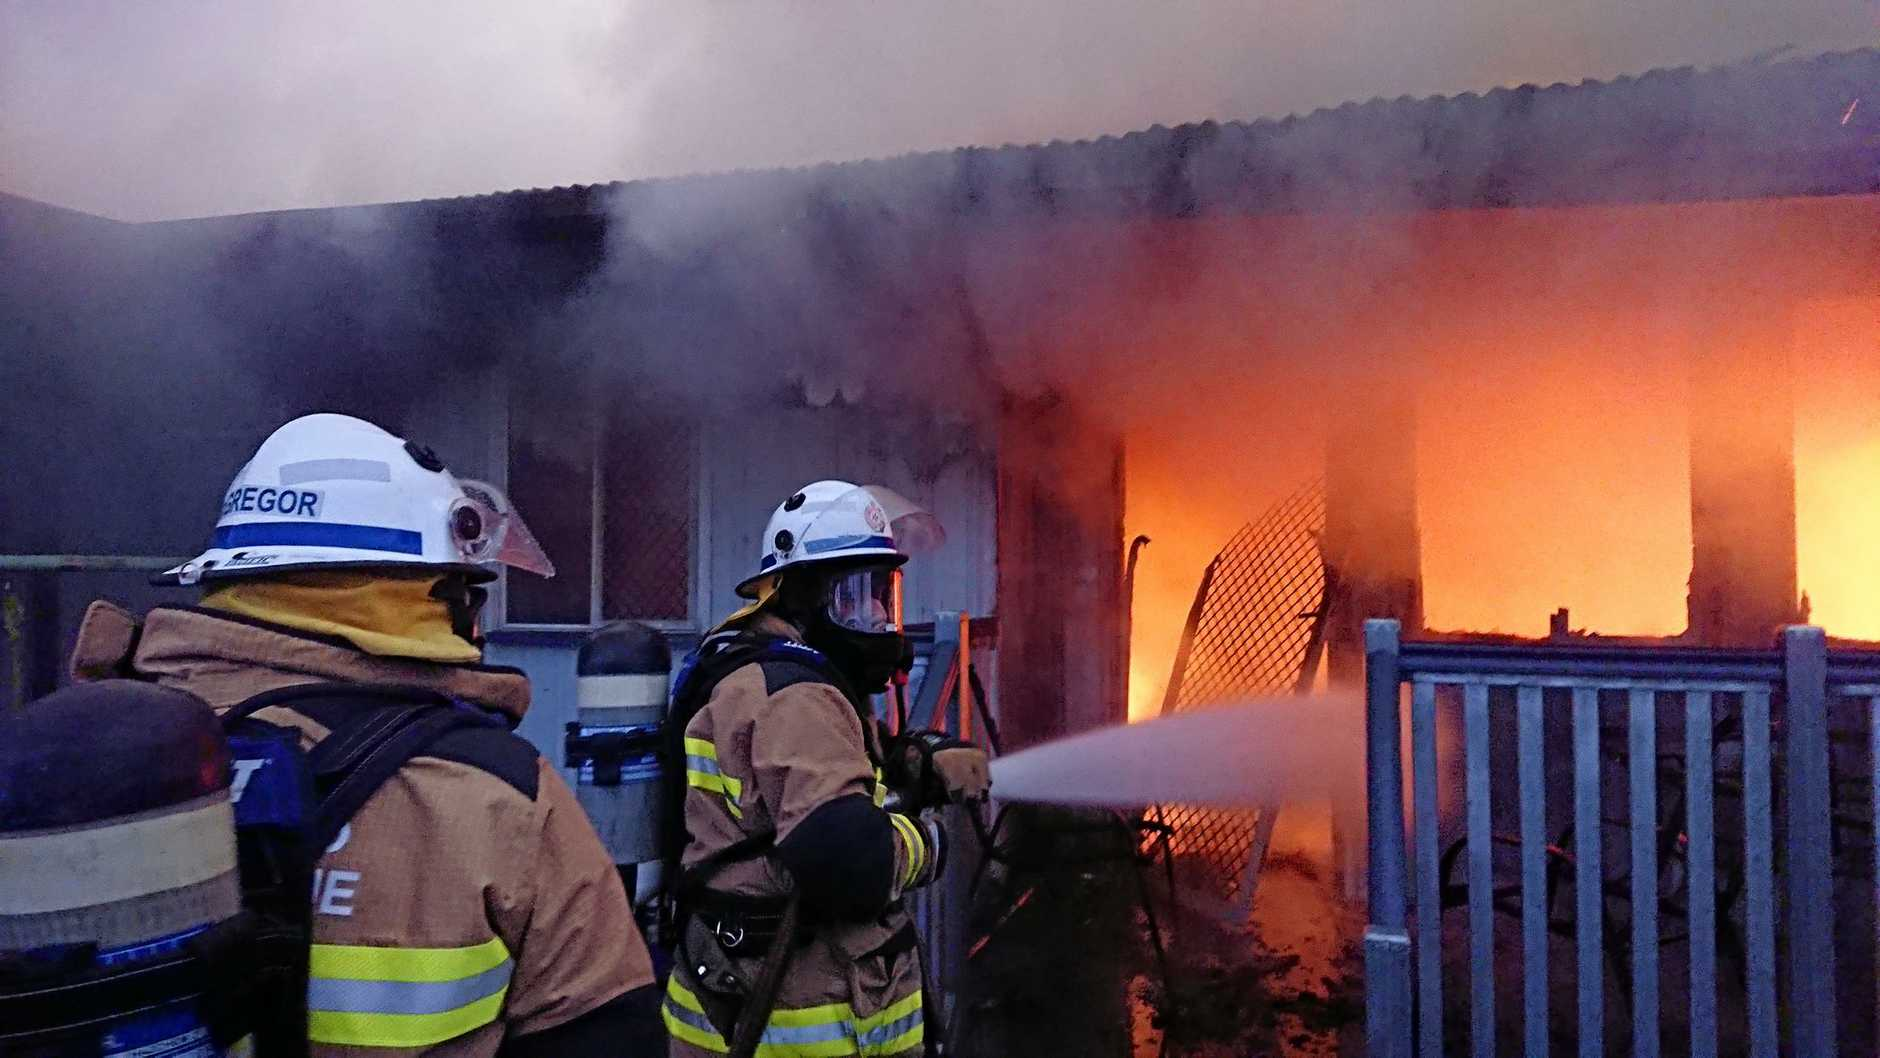 OAK AVE FIRE: Fire crews put out the blaze which engulfed the Cherbourg family home.